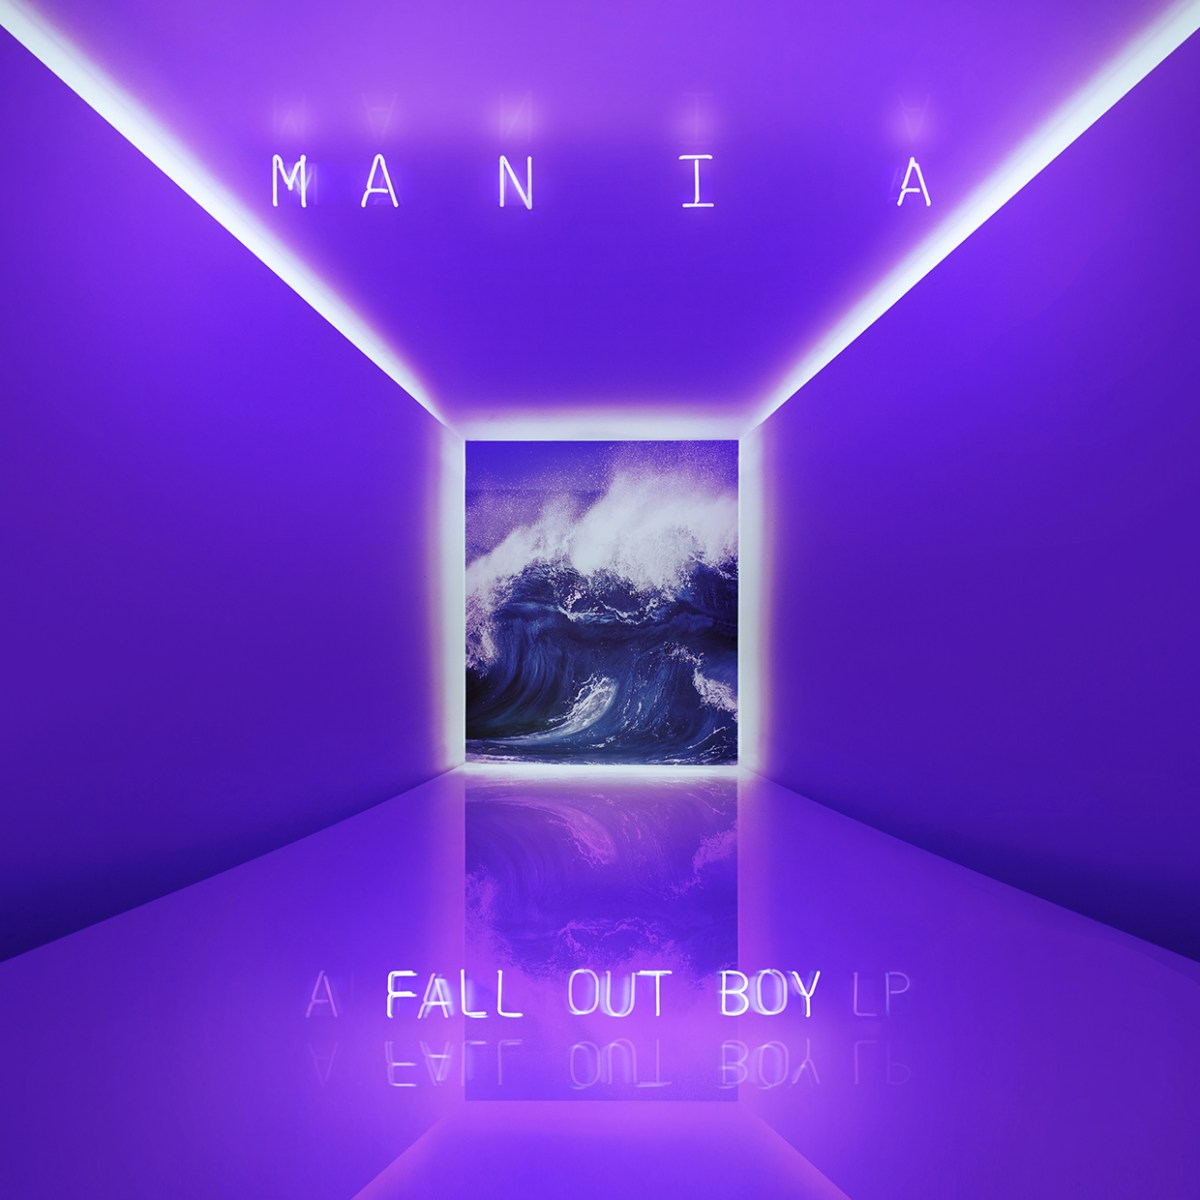 Fall Out Boy – M  A   N    I     A (Album Review)